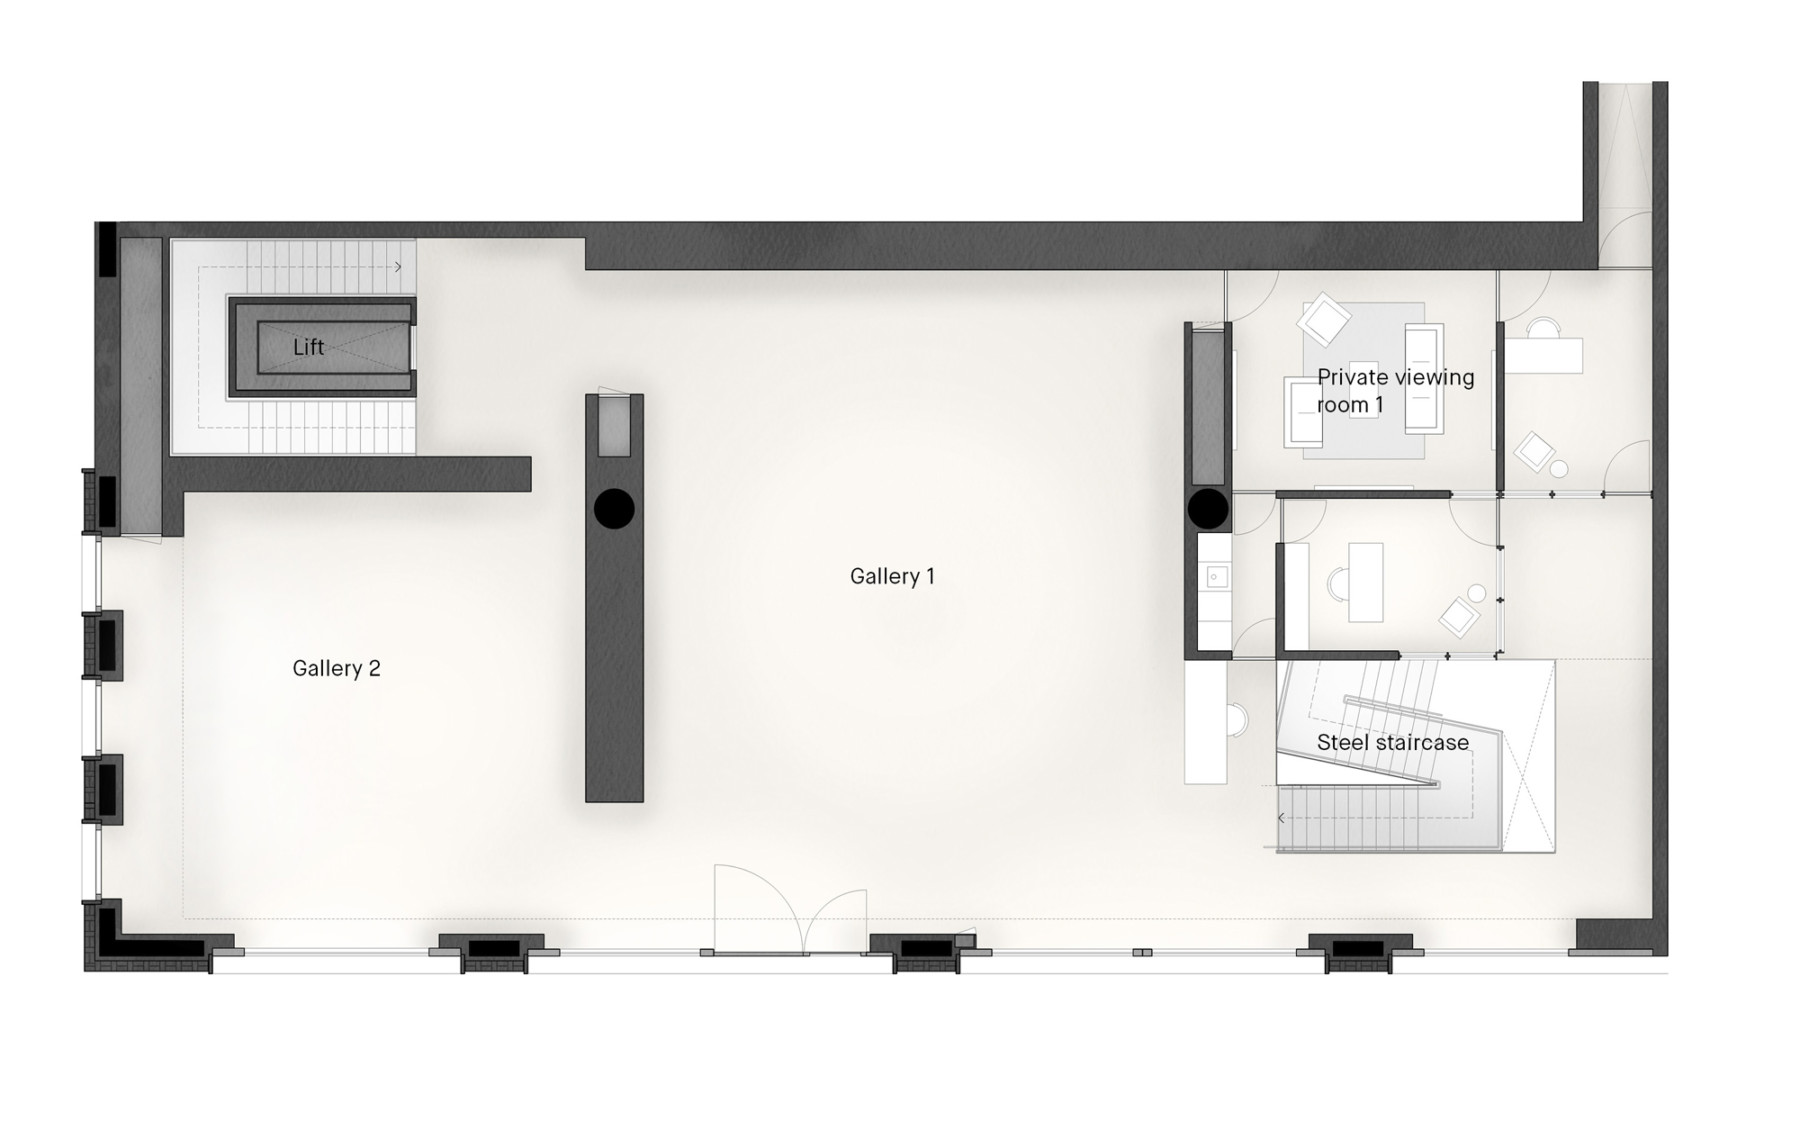 Pace-gallery-hanover-square-jamie-fobert-architects-ground-plan